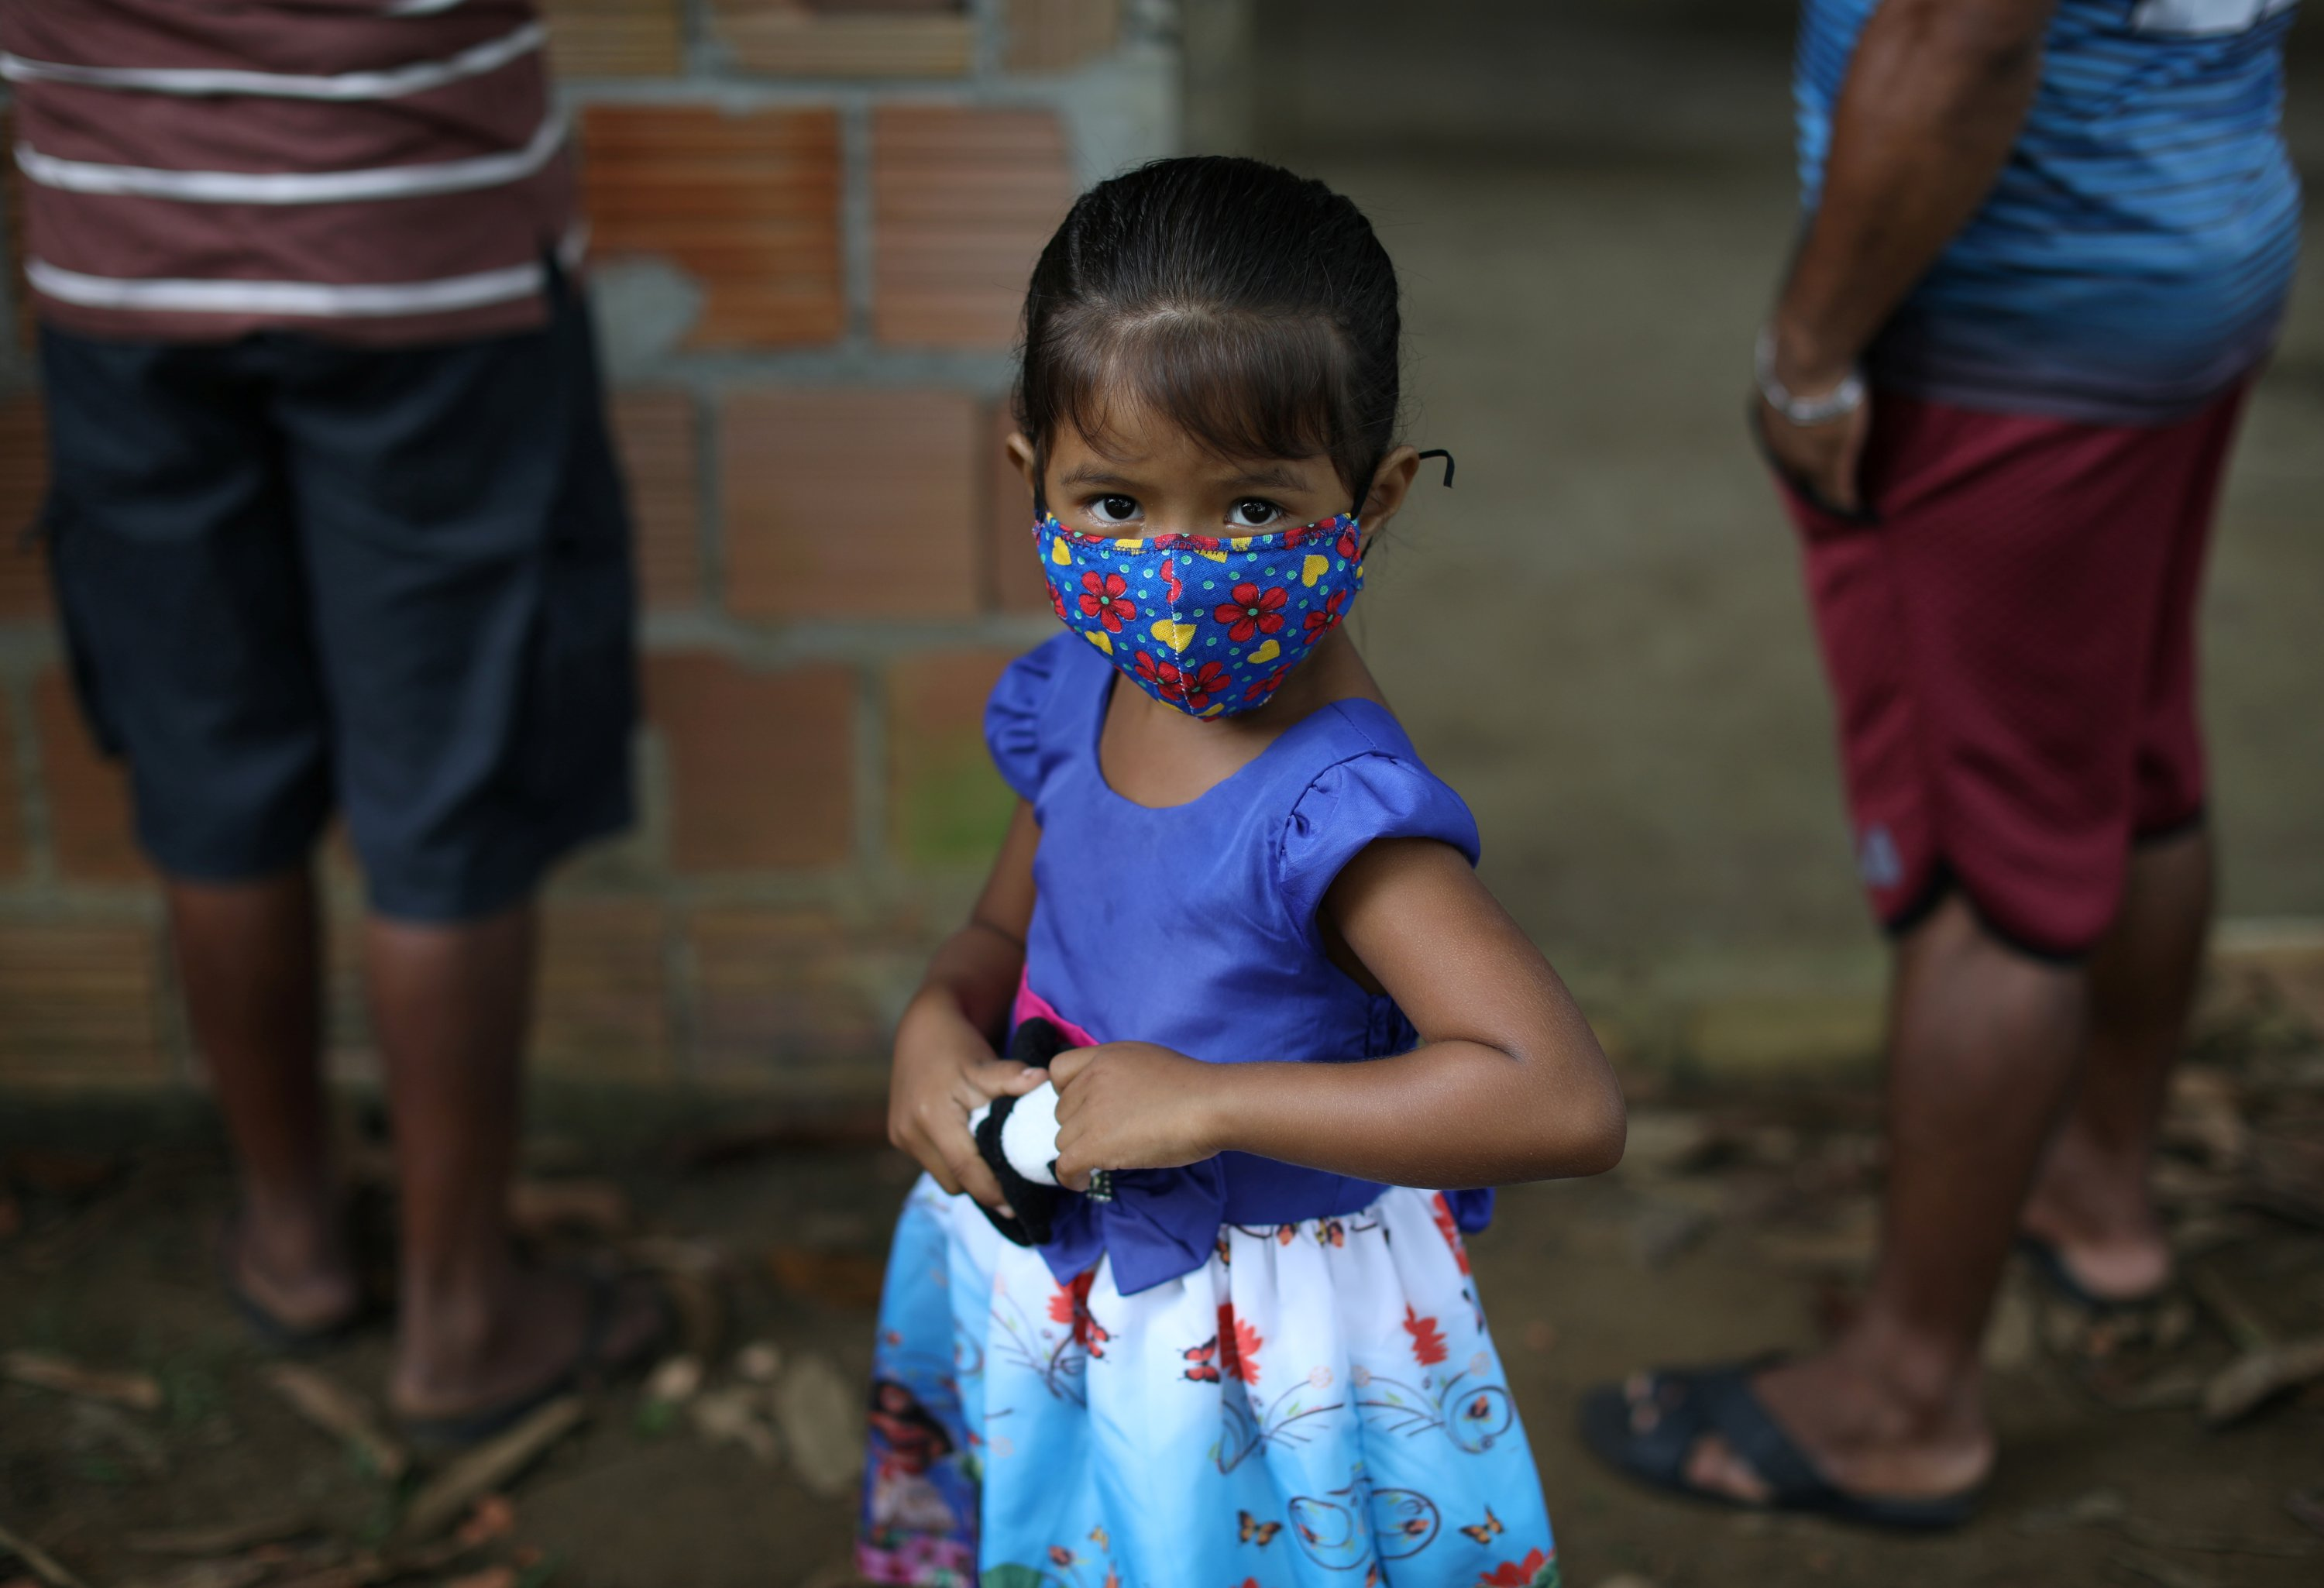 A child wearing a protective face mask waits to be tested for the coronavirus in the Bela Vista do Jaraqui, in the Conservation Unit Puranga Conquista along the Negro River banks, where Ribeirinhos (forest dwellers) live, in Manaus, Brazil, May 29, 2020. (Reuters Photo)